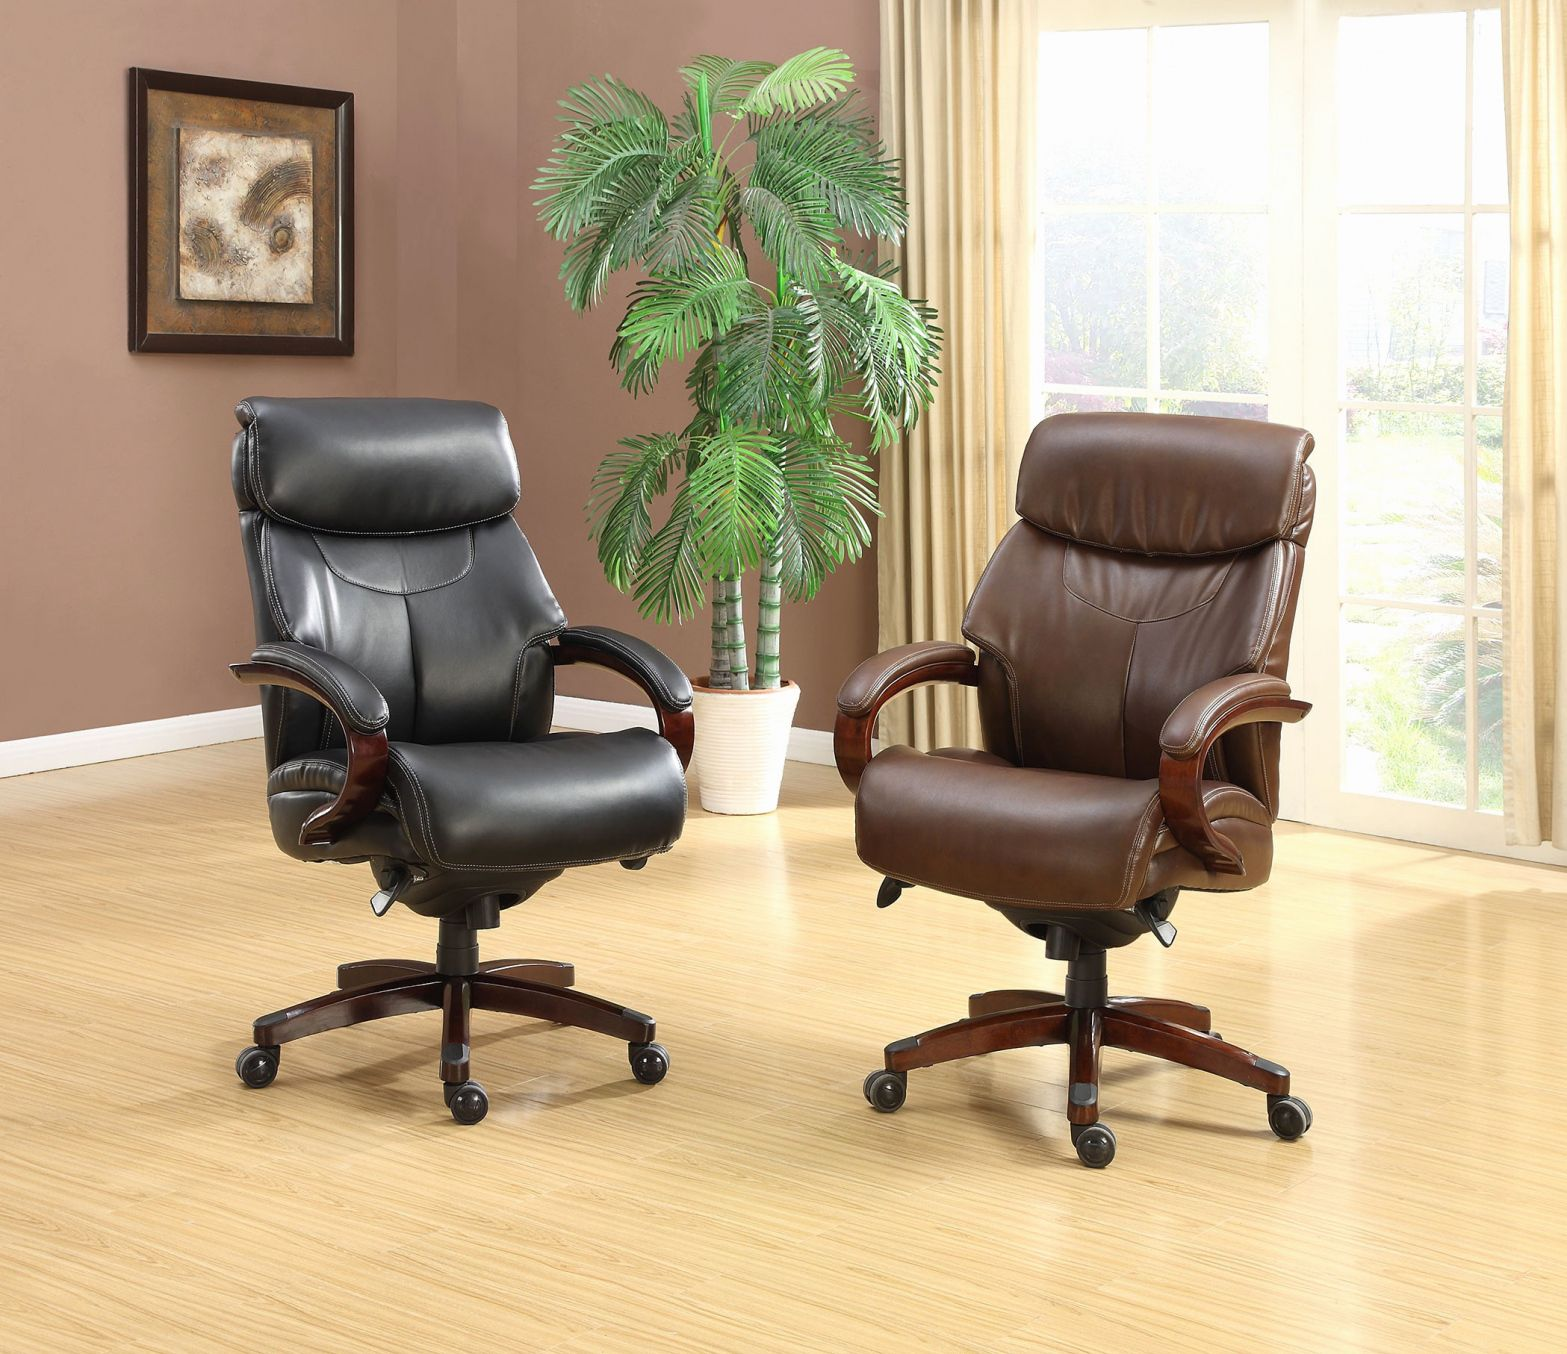 modern executive office chair, winners only executive office chair, bassett executive office chair, leather executive office chair, lane executive office chair, high back executive office chair, adele reclining executive office chair, full grain aniline leather office chair, broyhill executive office chair, lazy boy office chair, steelcase executive office chair, best executive office chair, mayline executive office chair, on la z boy executive office chair